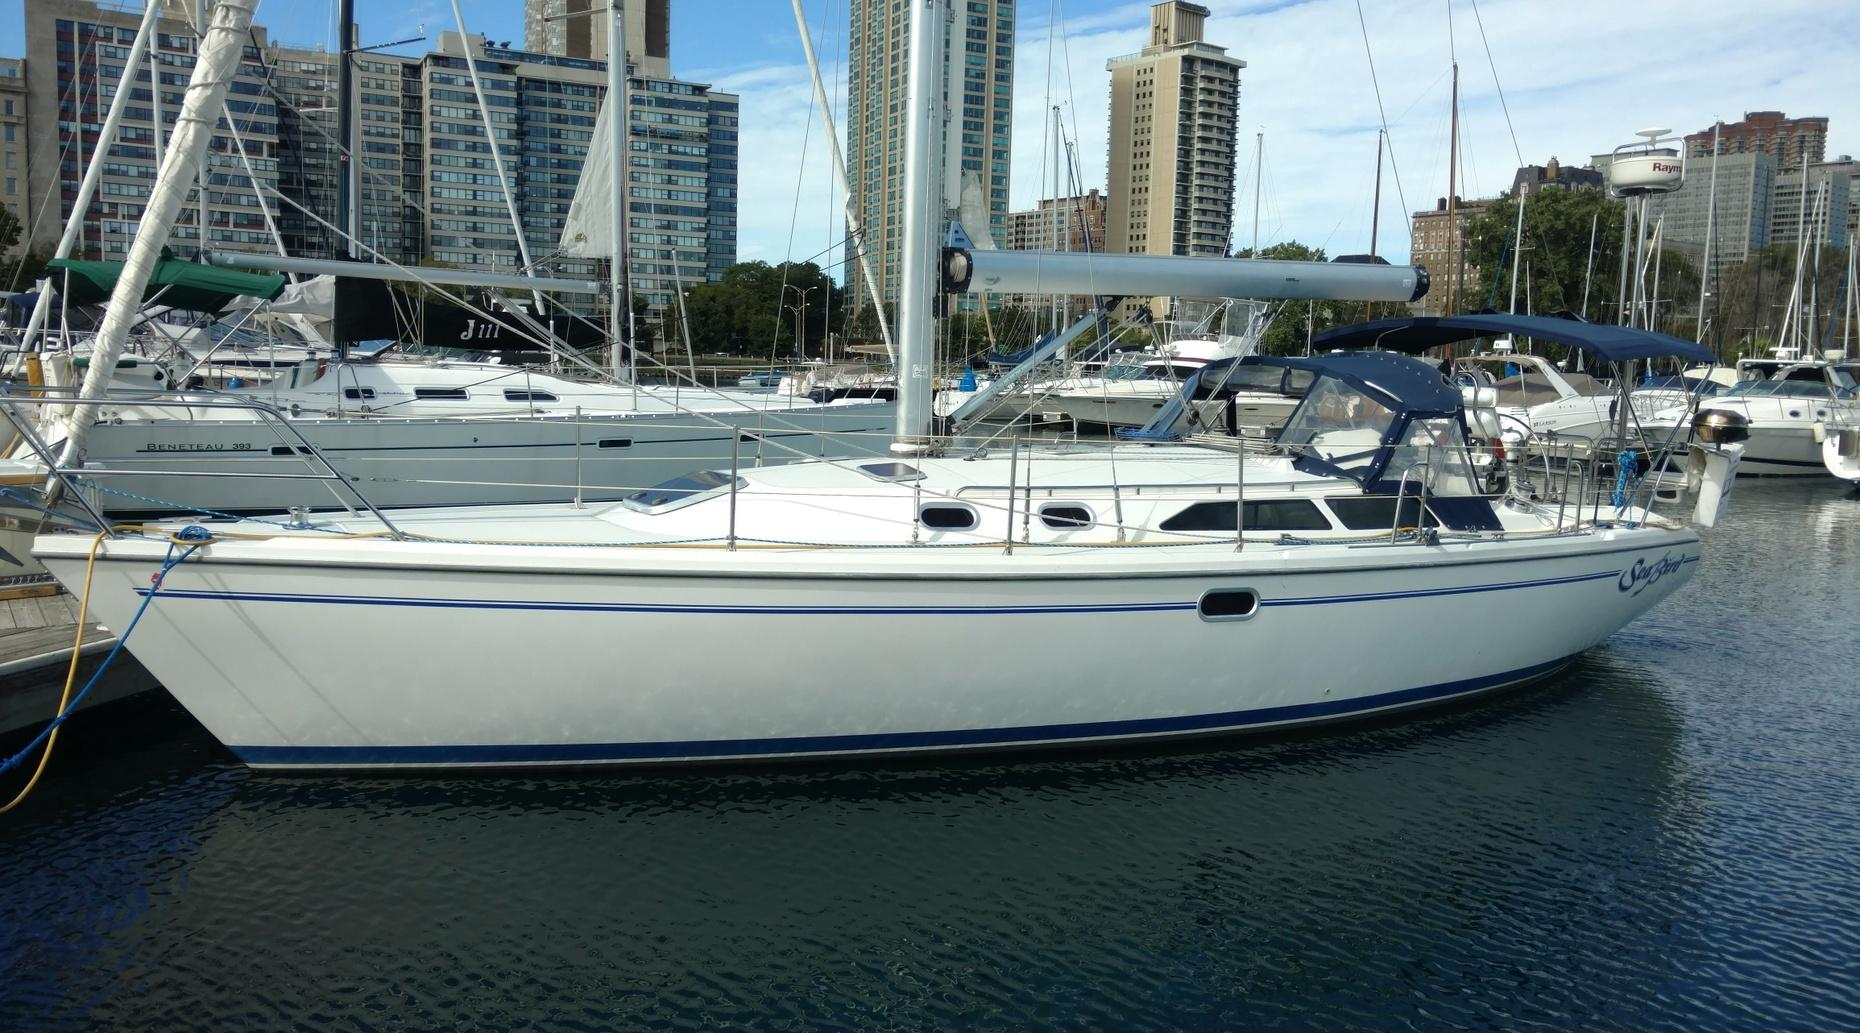 Private Couples Sail Weekend